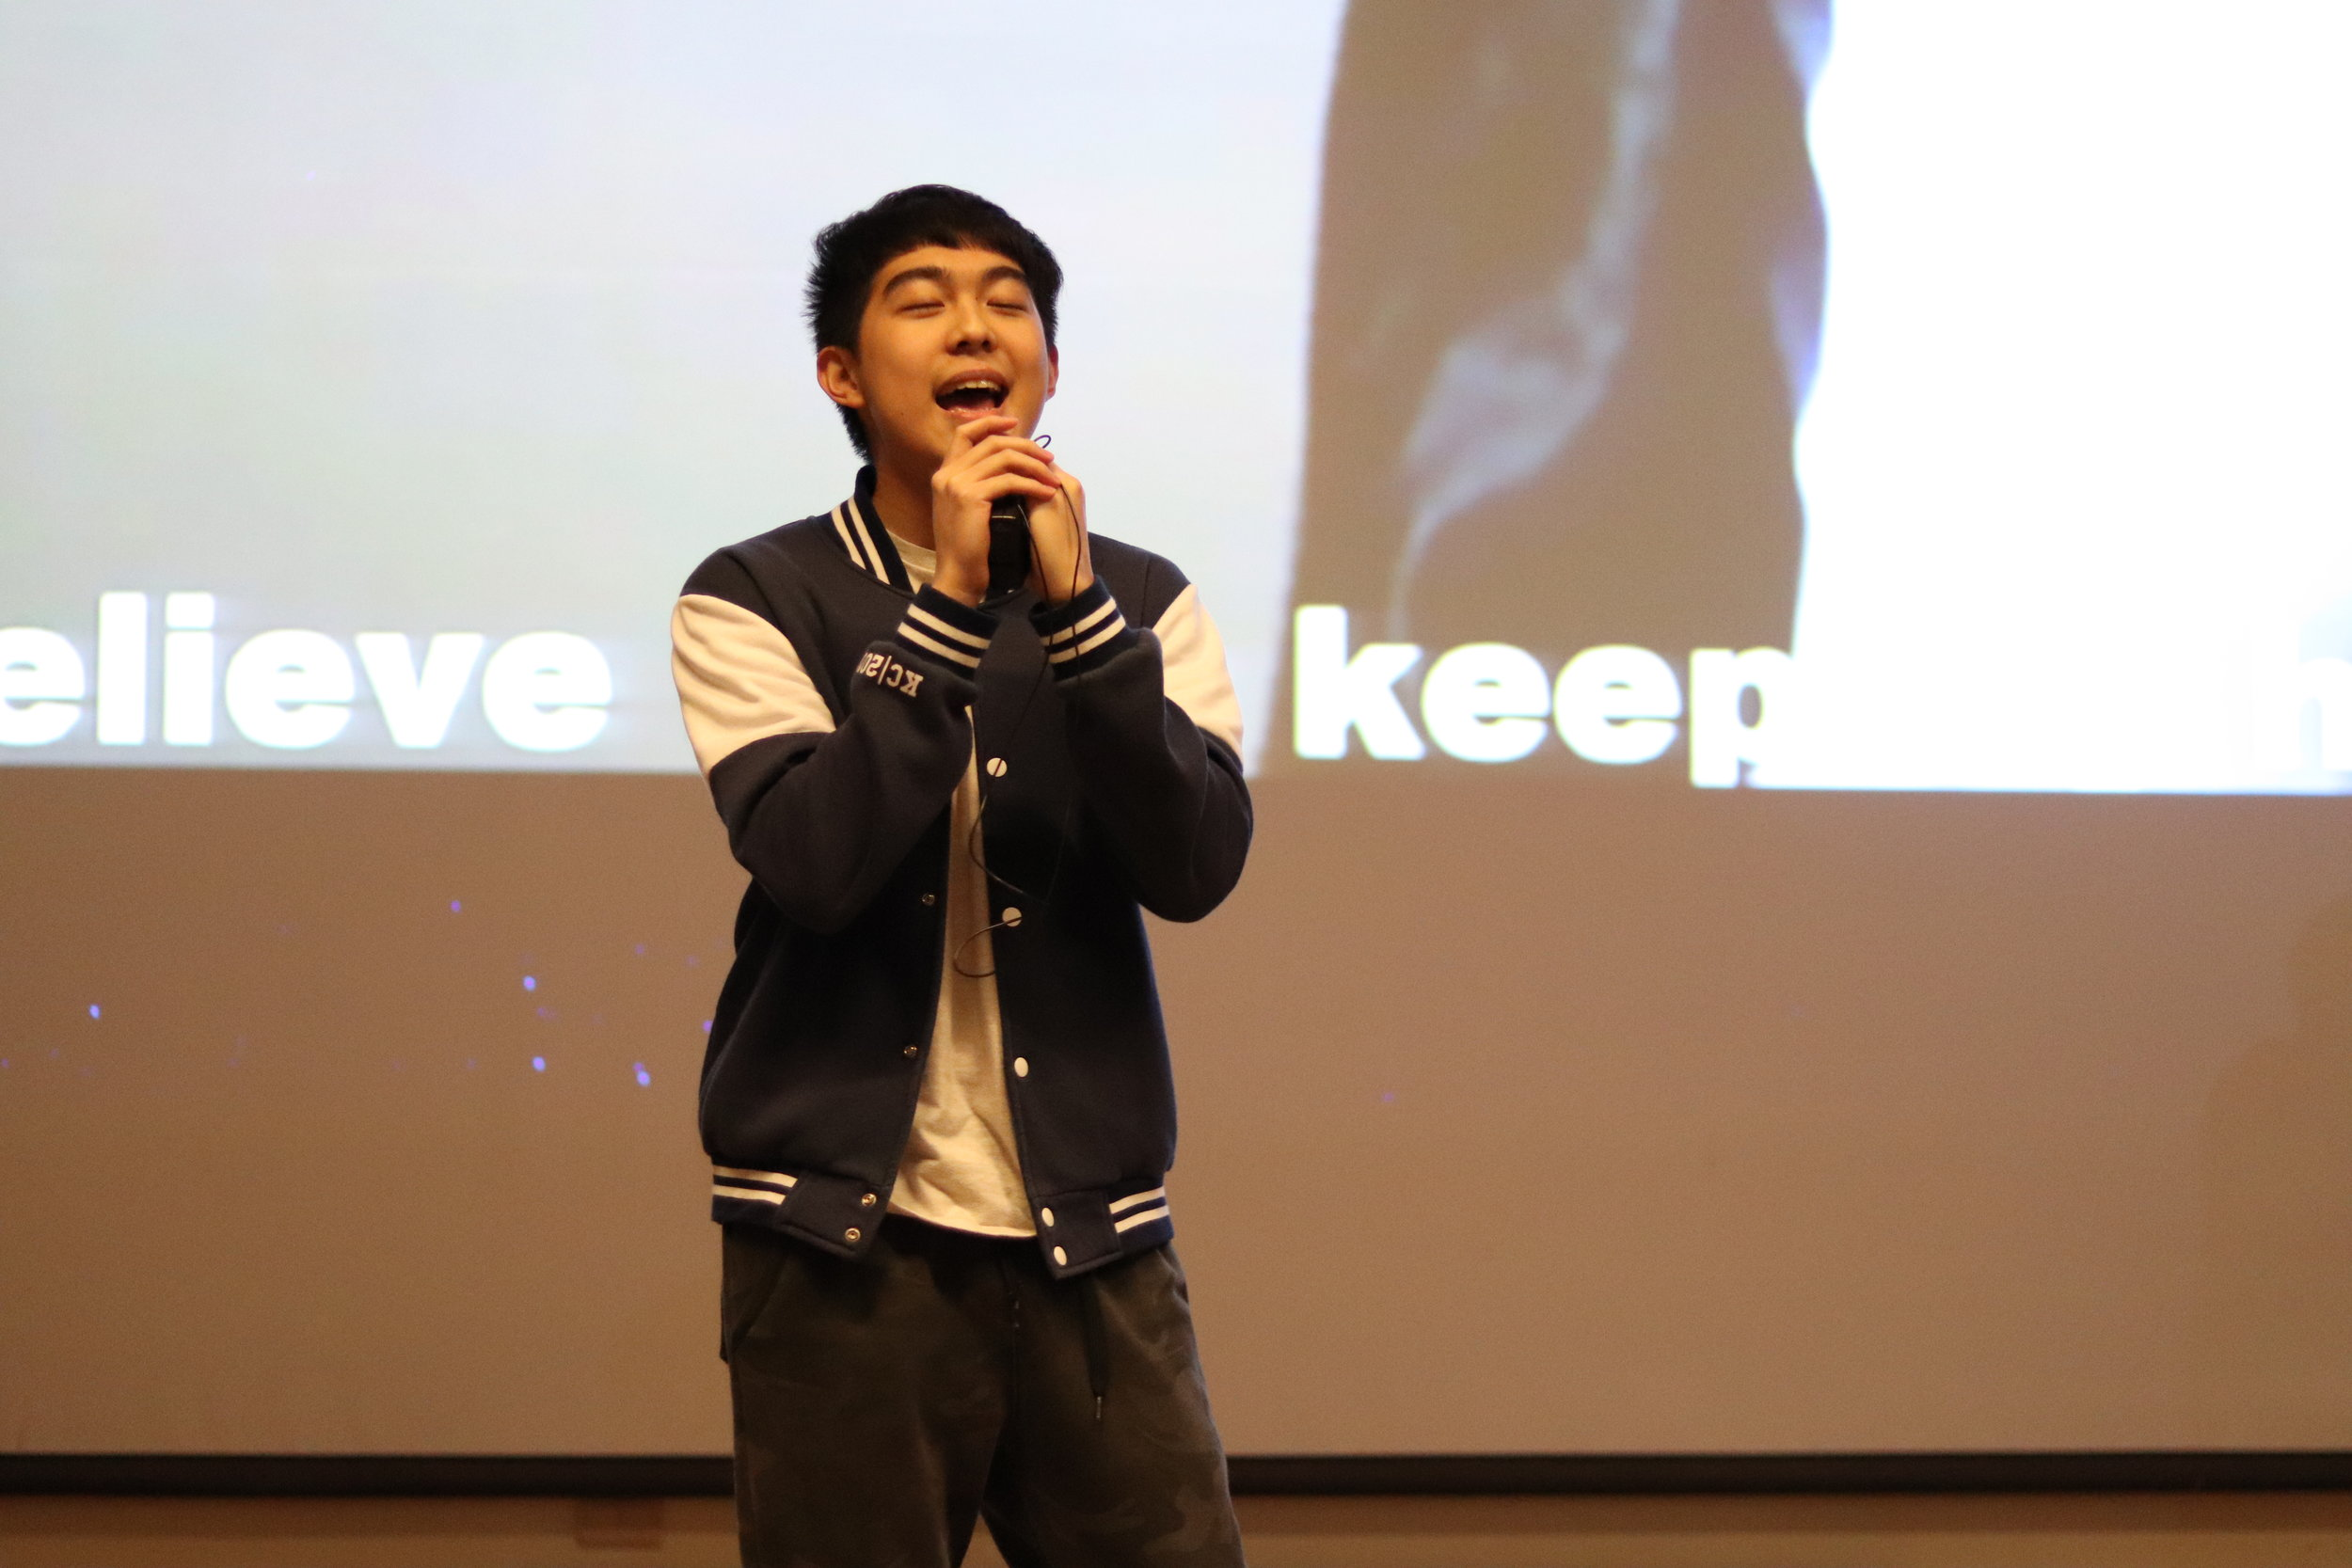 Active Vincent Lin helped candidate Jerry Wang belt out a song